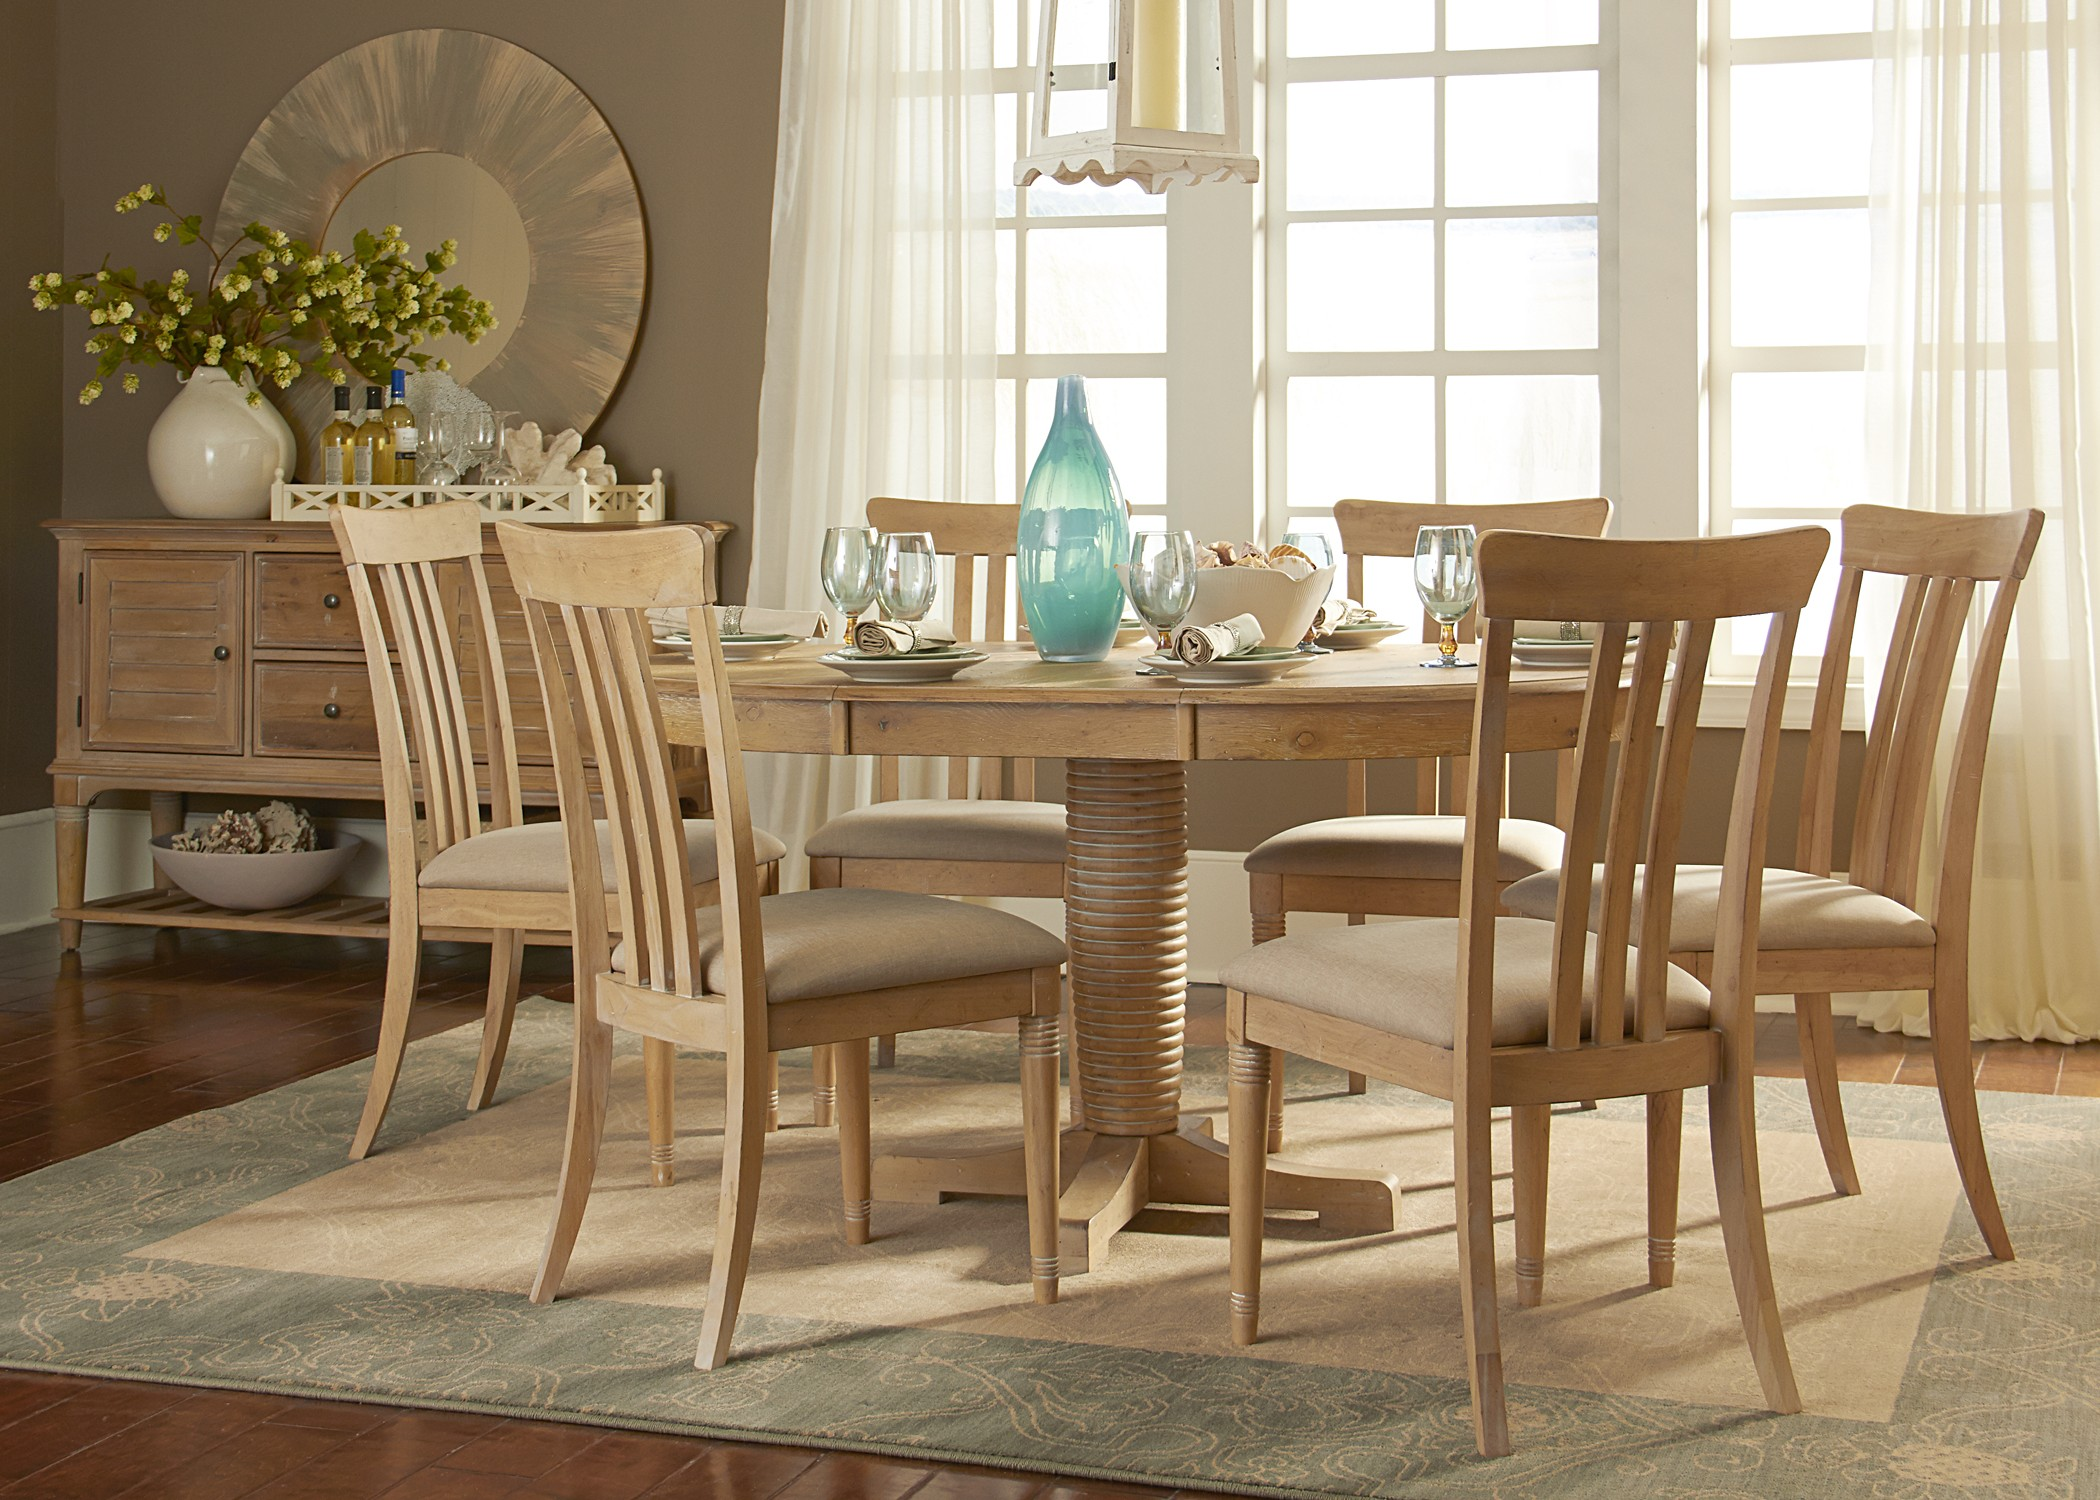 Bluff Cove Oval Dining Room Set 268 T4260 P4260 Liberty Furniture